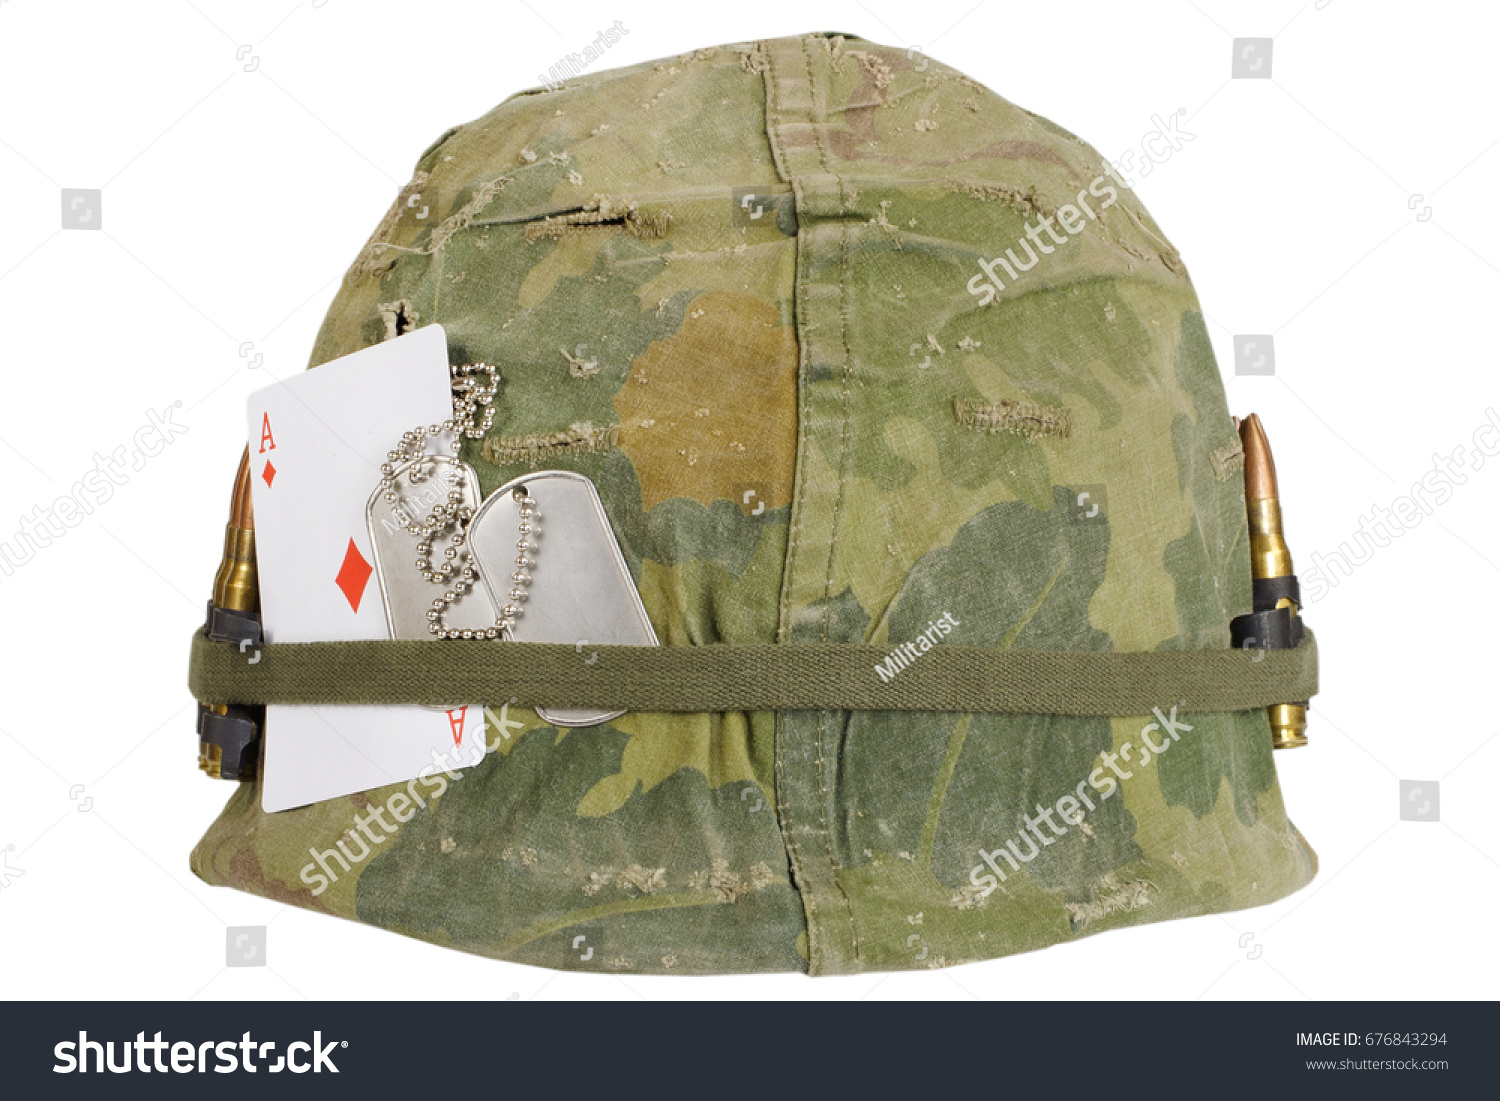 fe601c05 US Army helmet Vietnam war period with camouflage cover and ammo belt, dog  tag and.